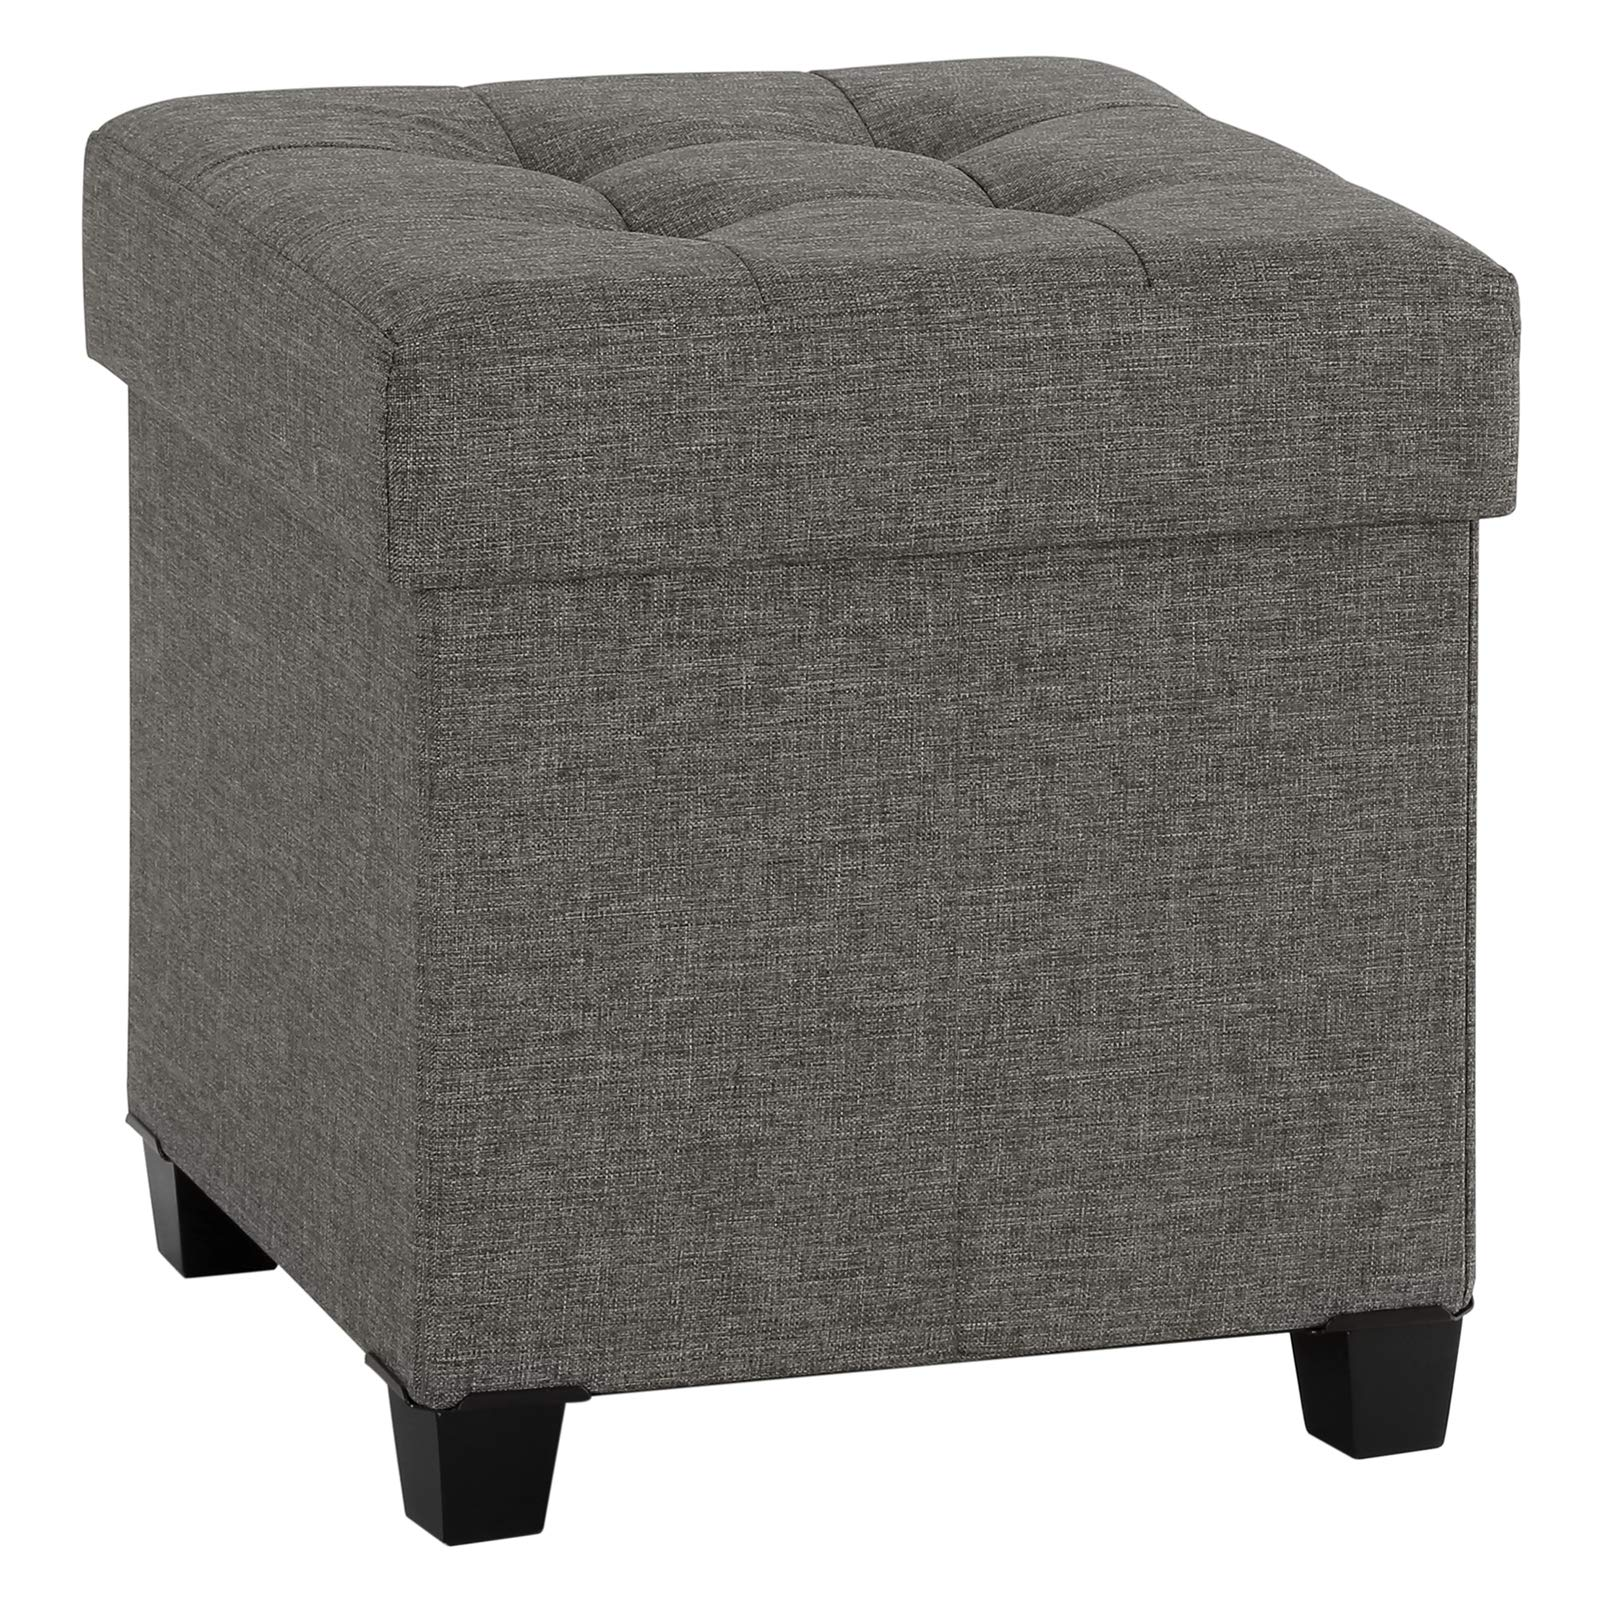 SONGMICS ULSF14GYZ Collapsible Cube Storage Ottoman/Foot Stool/Comfortable Seat/with Wooden Feet and Lid Dark Grey